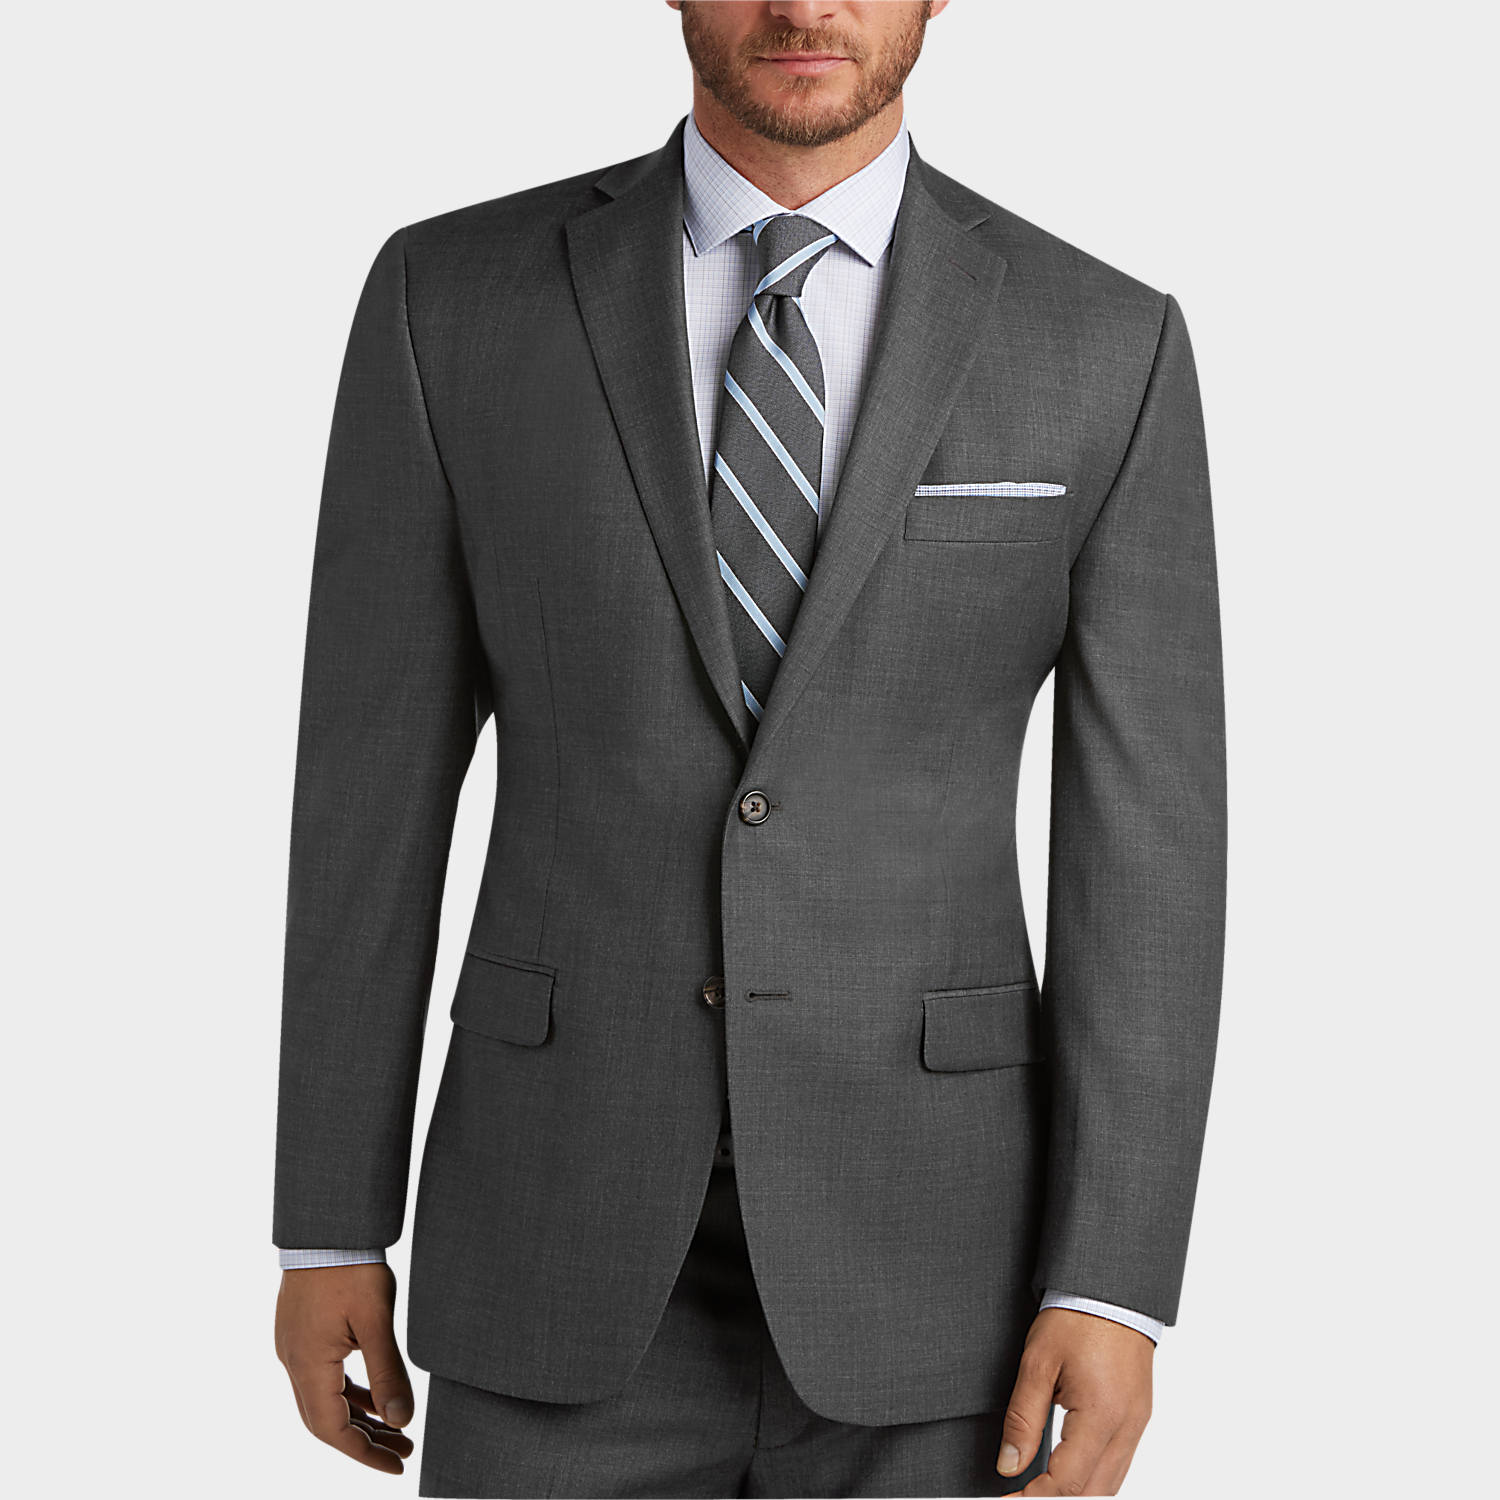 The Suit Depot has a huge selection of men's suits online at affordable prices! Shop for designer mens wool, cotton, linen, slim fit, classic fit, and 3 piece suits!